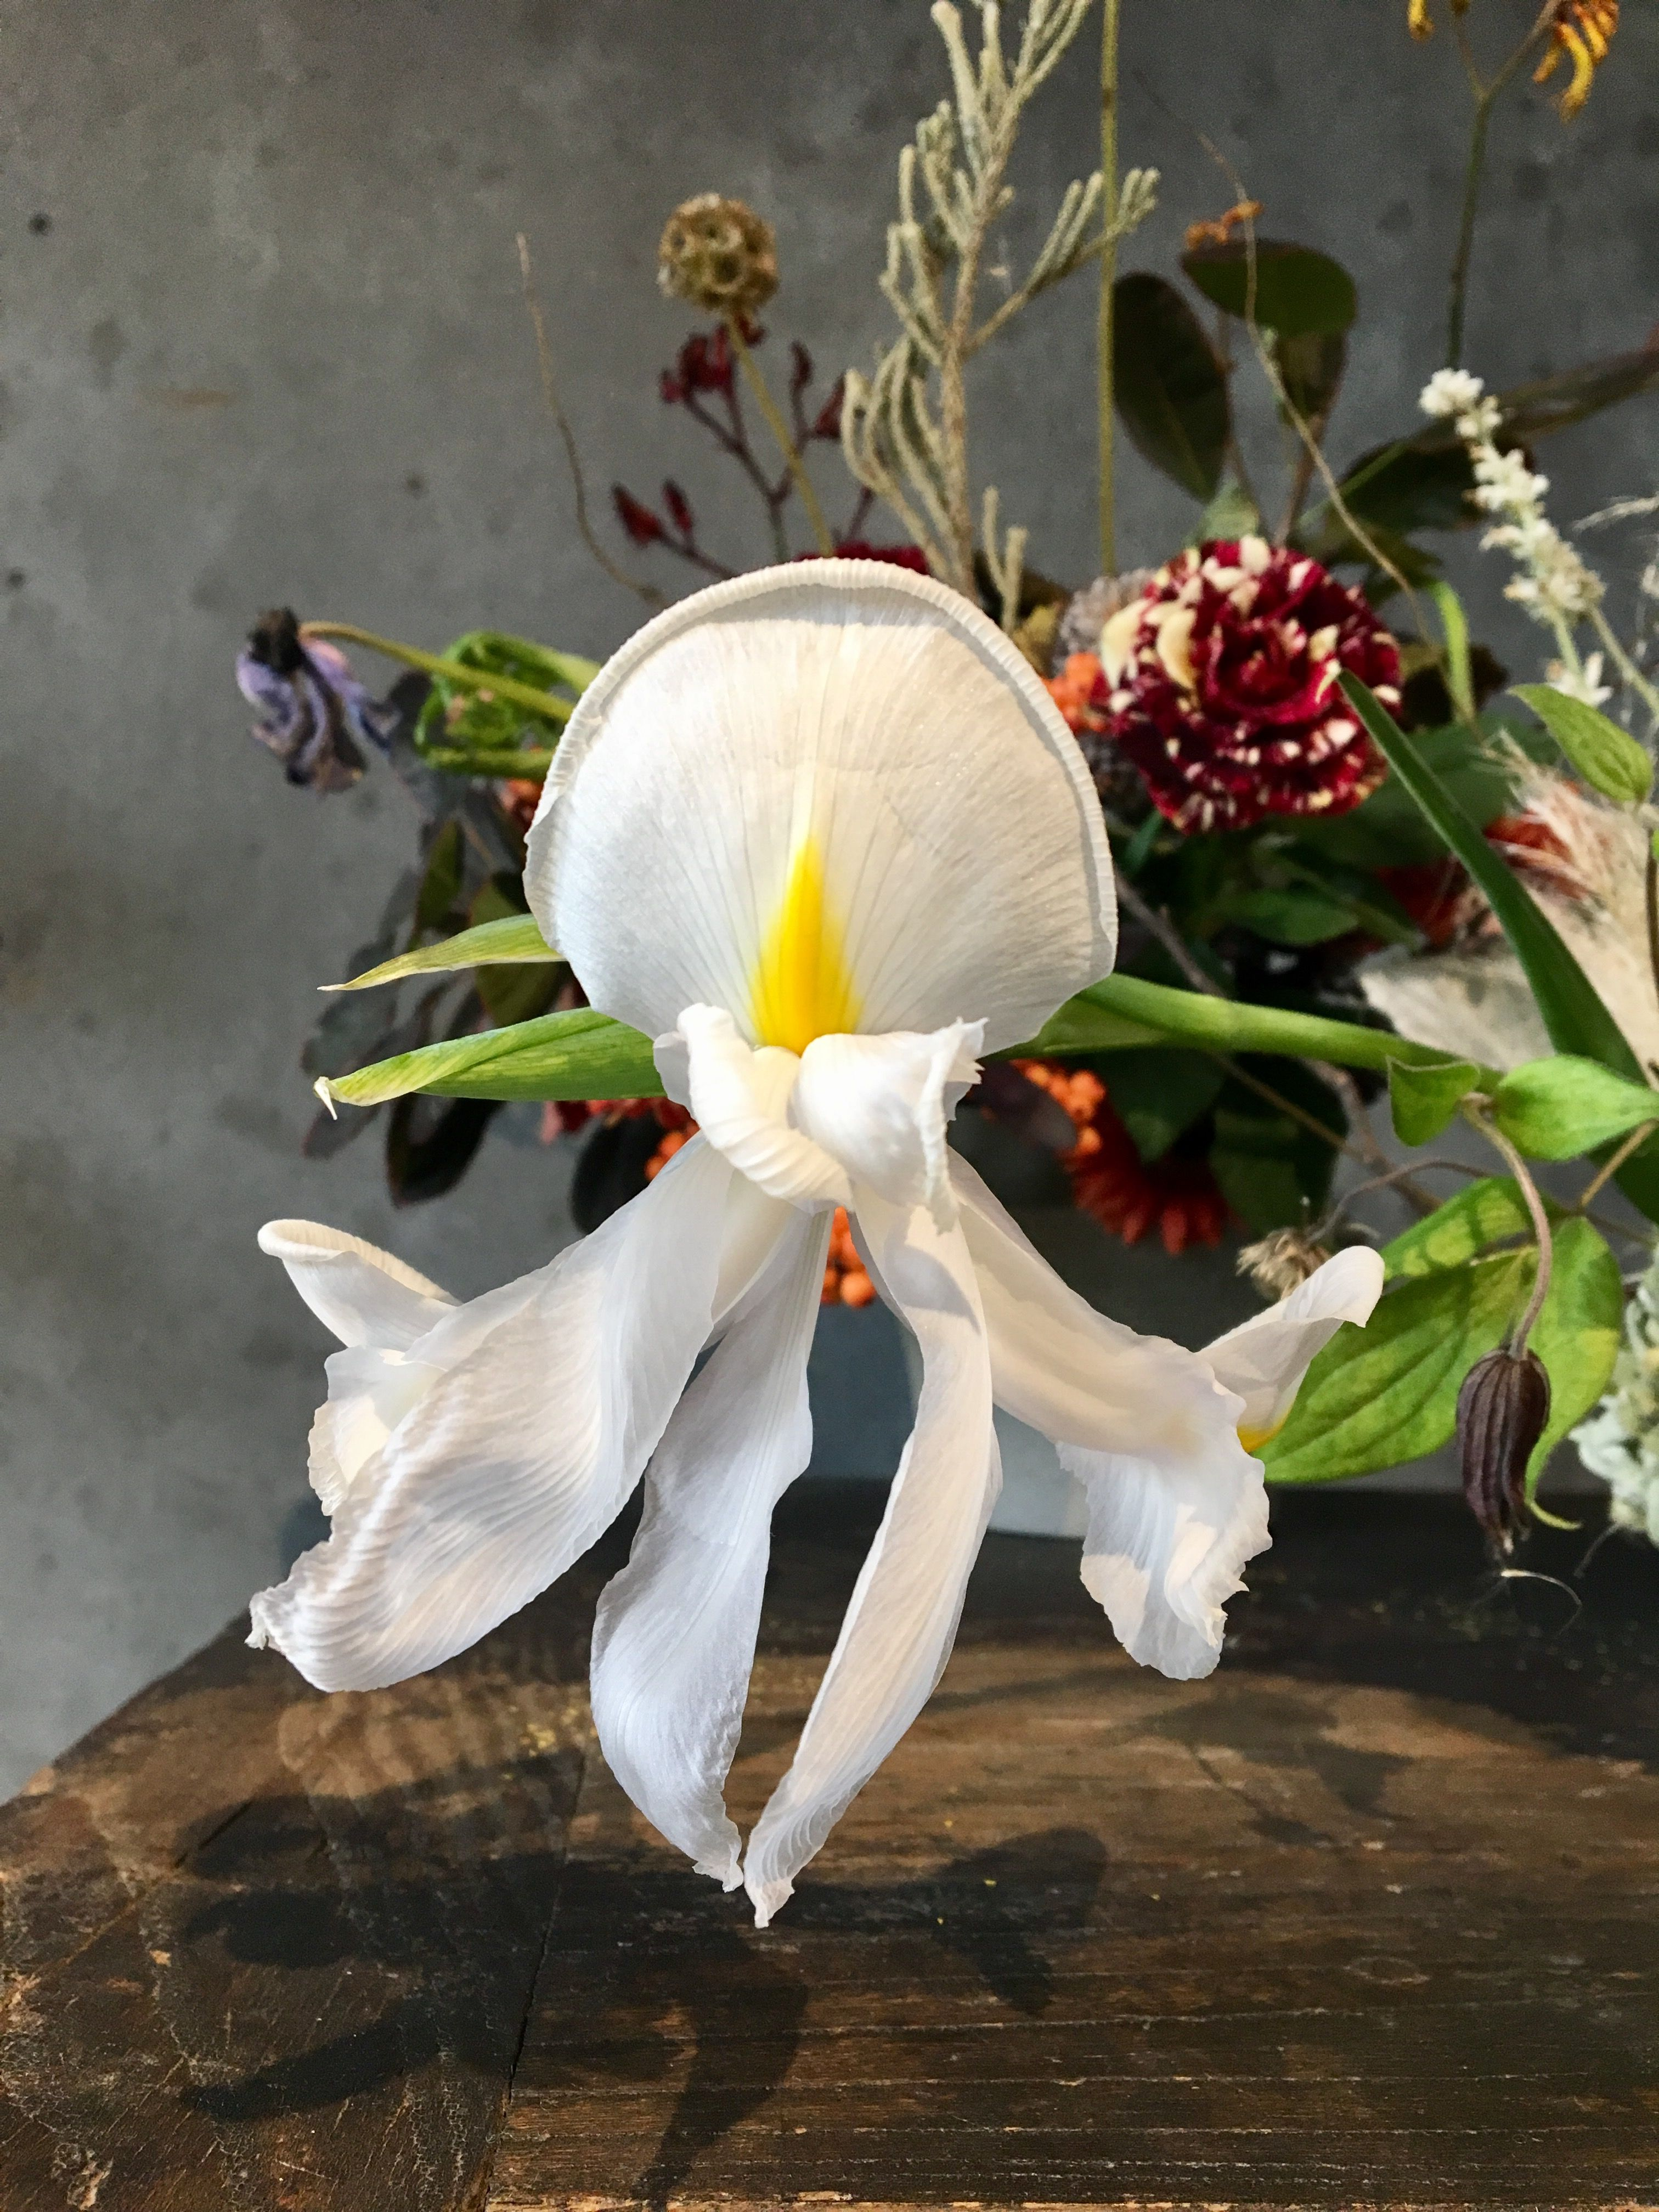 Not Sure What Flower This Is But Its Like A Floating Angel